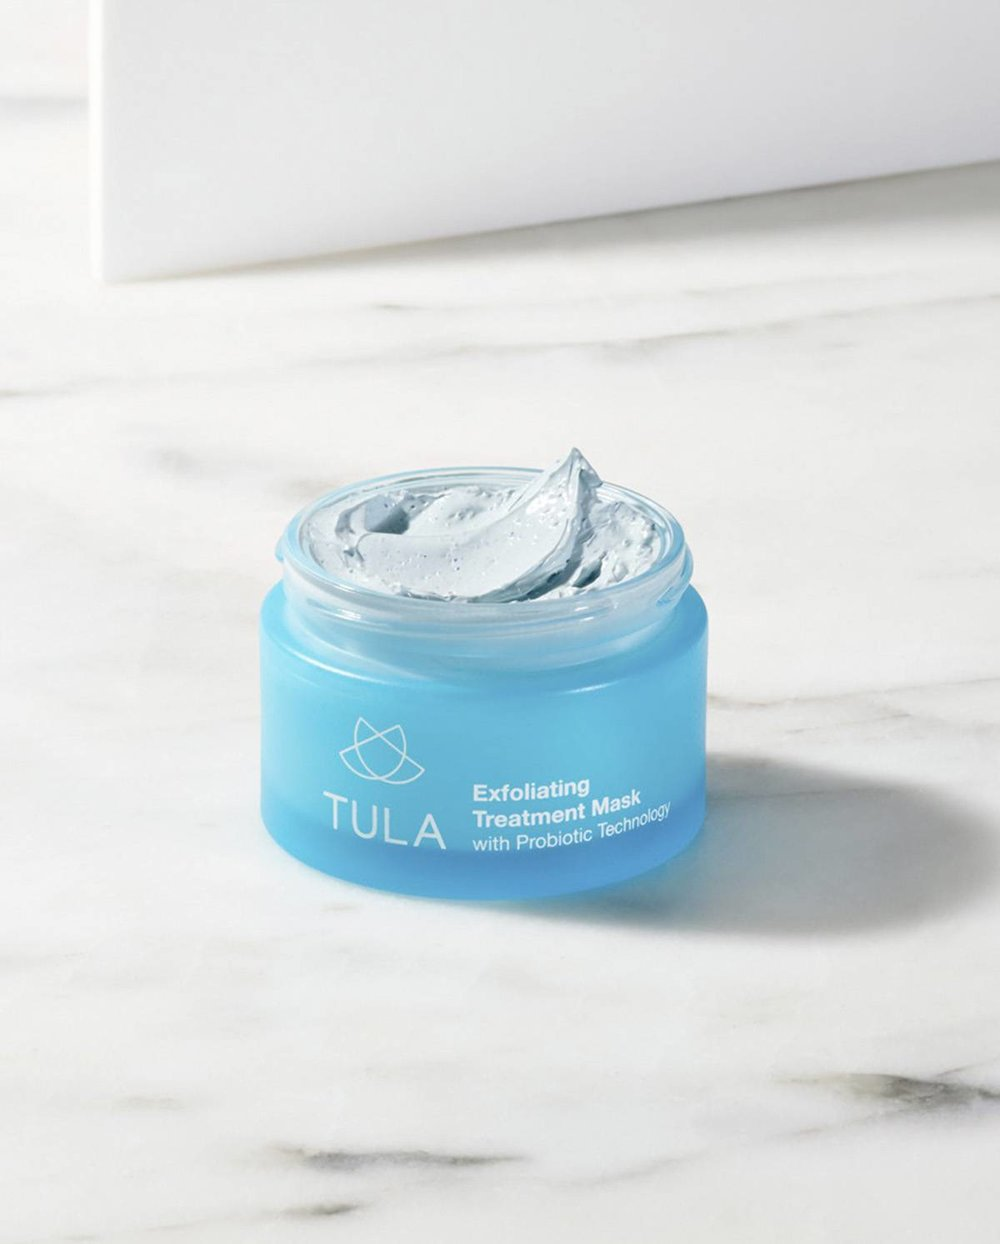 tula-exfoliatingtreatmentmask-open.jpg